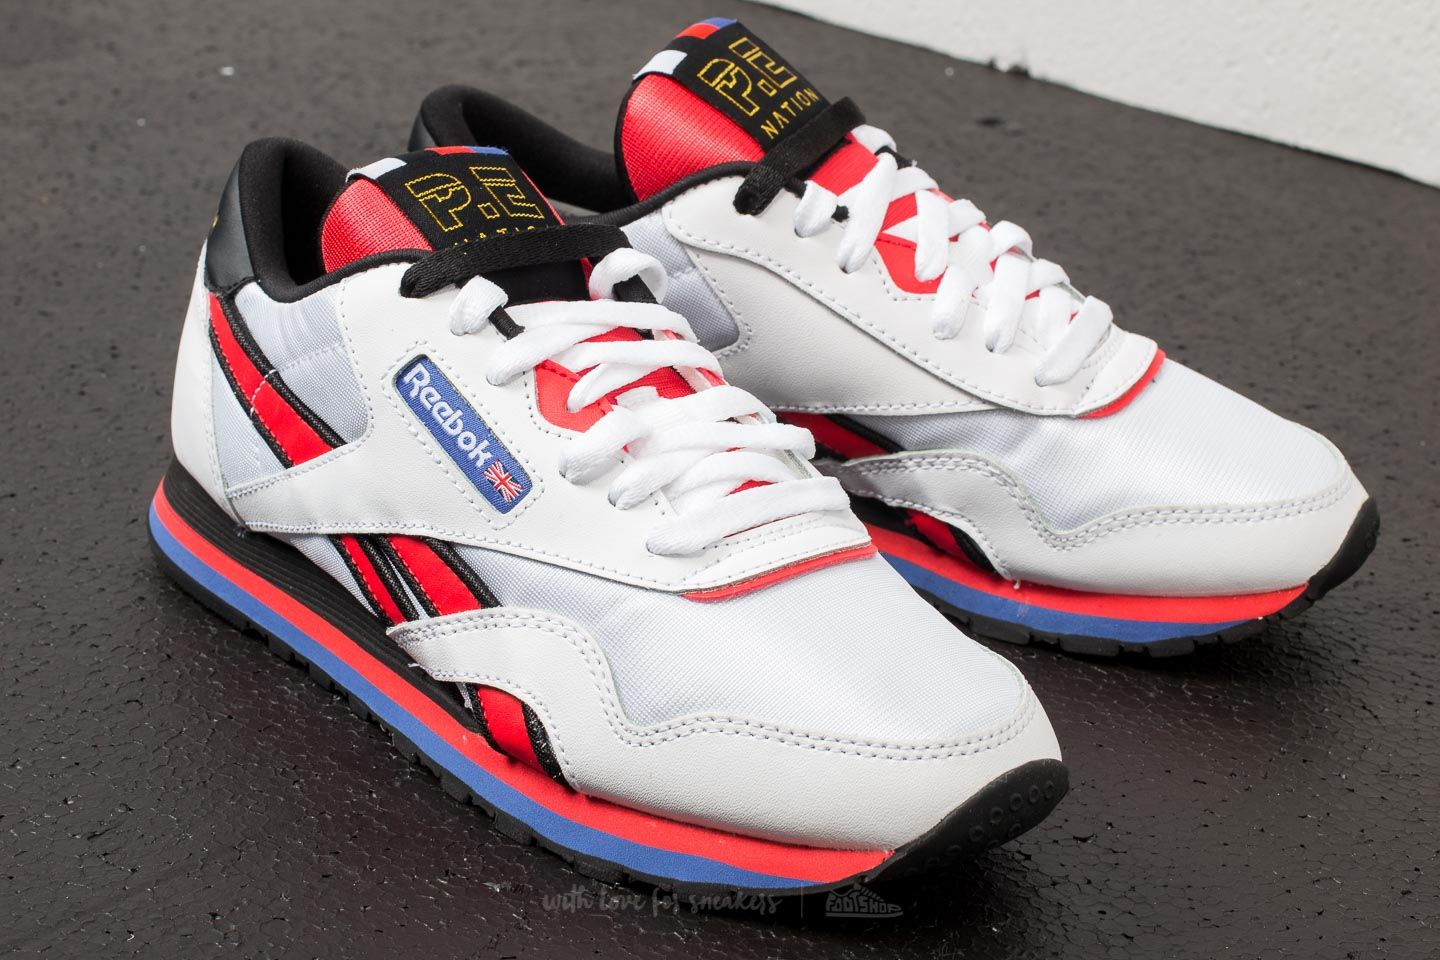 2d0a69d5376 Reebok x P.E. Nation Classic Nylon White  Day Glow Red  Black W super cenie